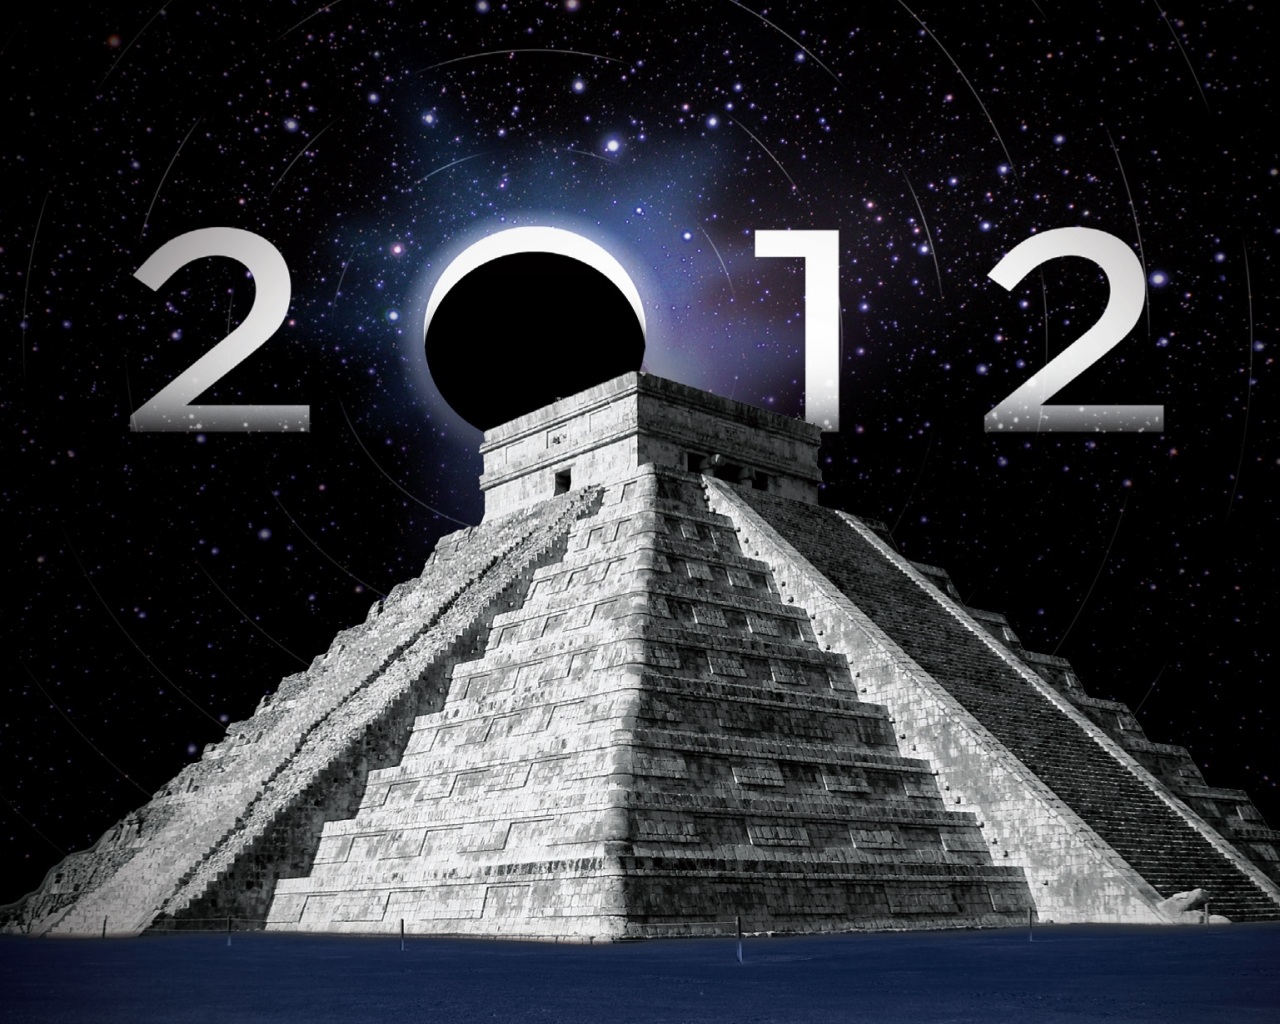 Images of 2012 | 1280x1024